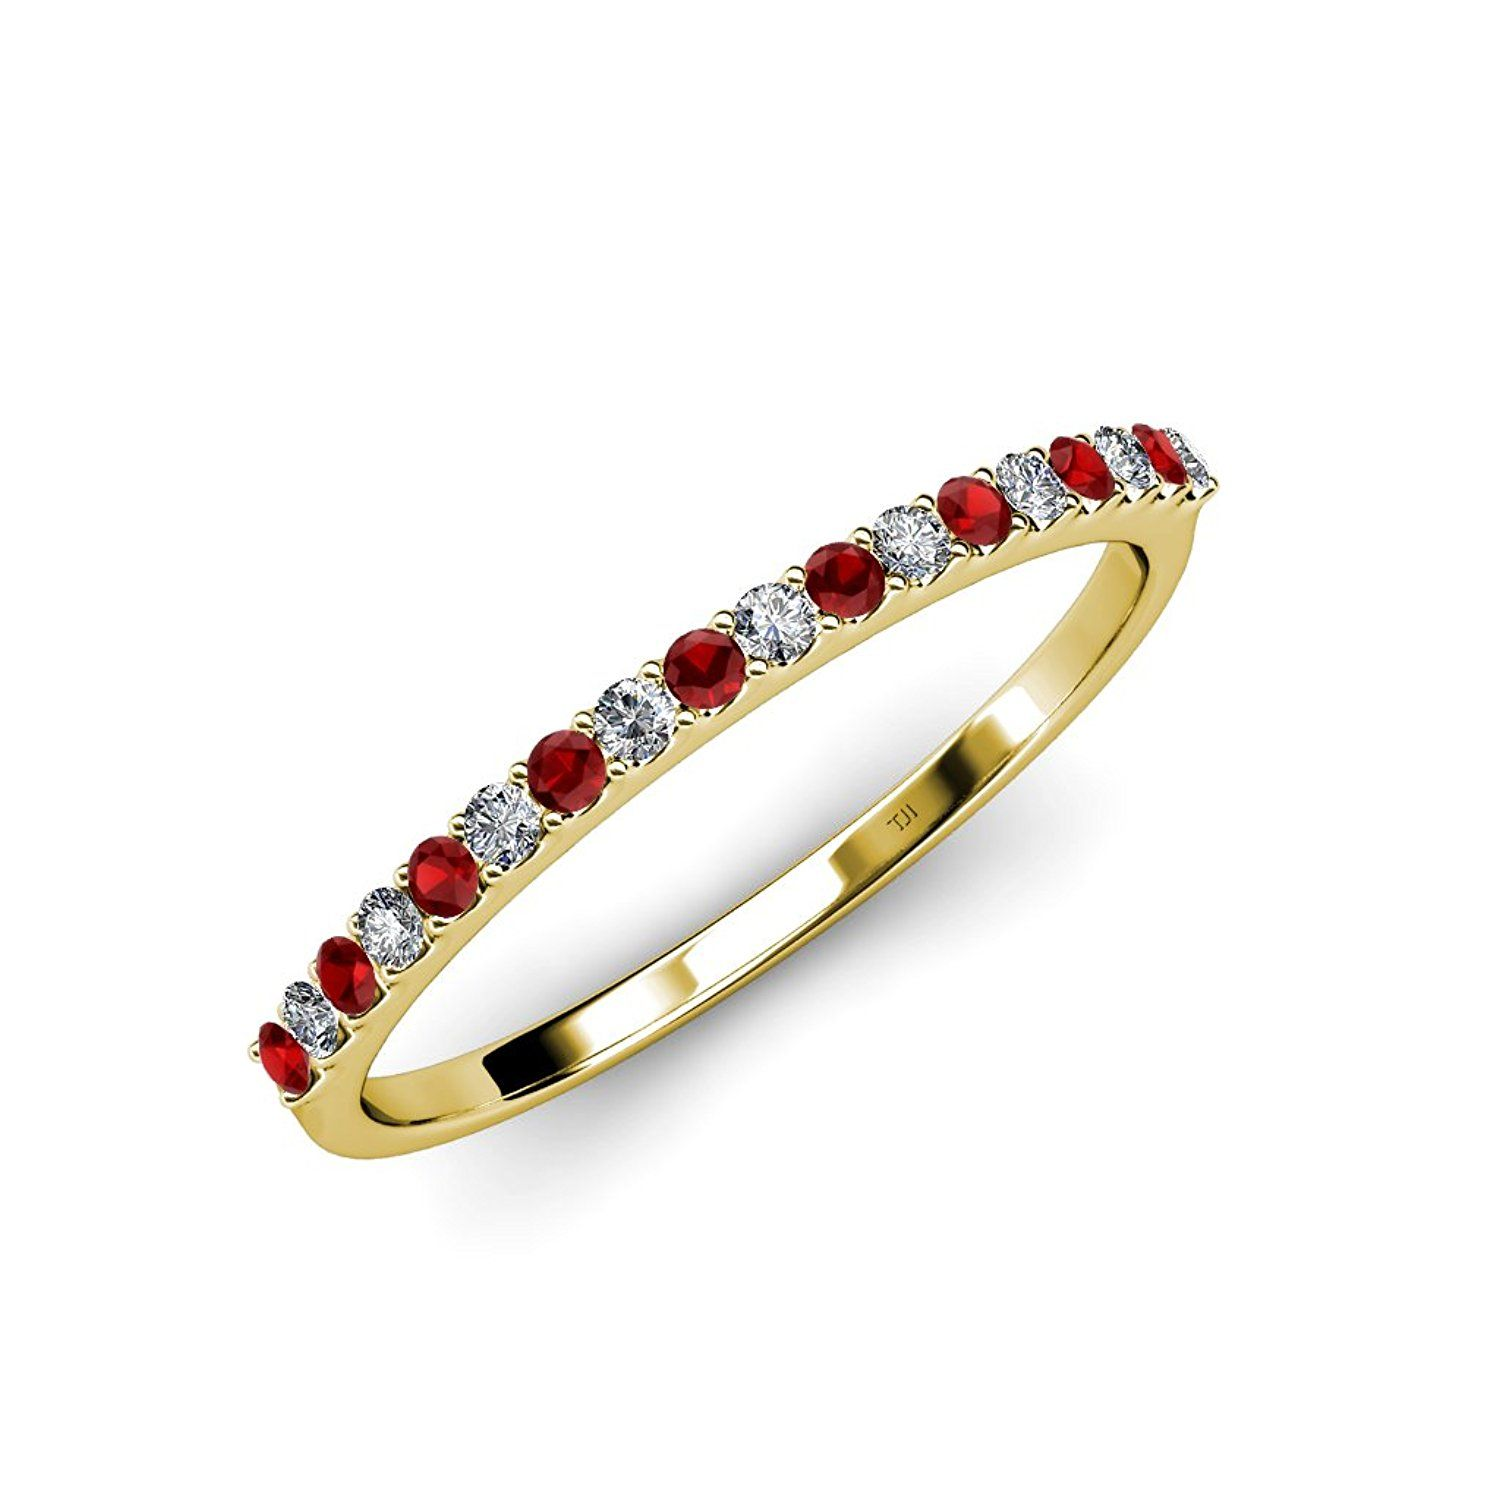 Red Garnet and Diamond (SI2-I1, G-H) 18 Stone Wedding Band 0.25 ct tw in 14K Gold >>> Startling review available here  : Wedding Rings